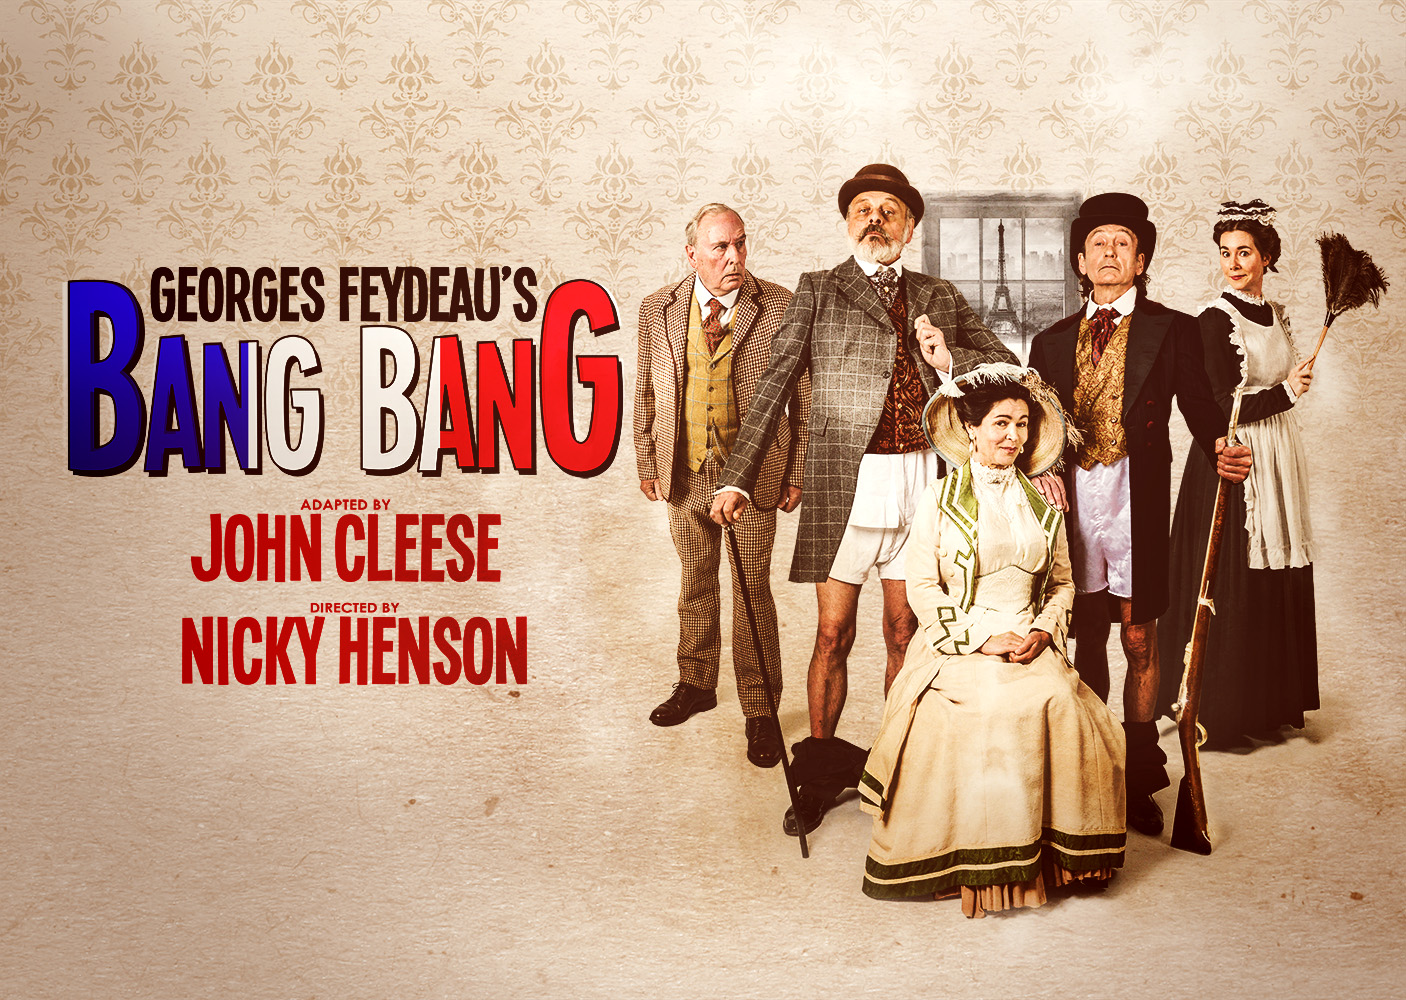 BANG BANG - Thrilled to have been asked to compose the music for this new production of the Feydeau farce 'Bang Bang'. Adapted by John Cleese and directed by Nicky Henson, it opens at Colchester Mercury Theatre on 1st March!!